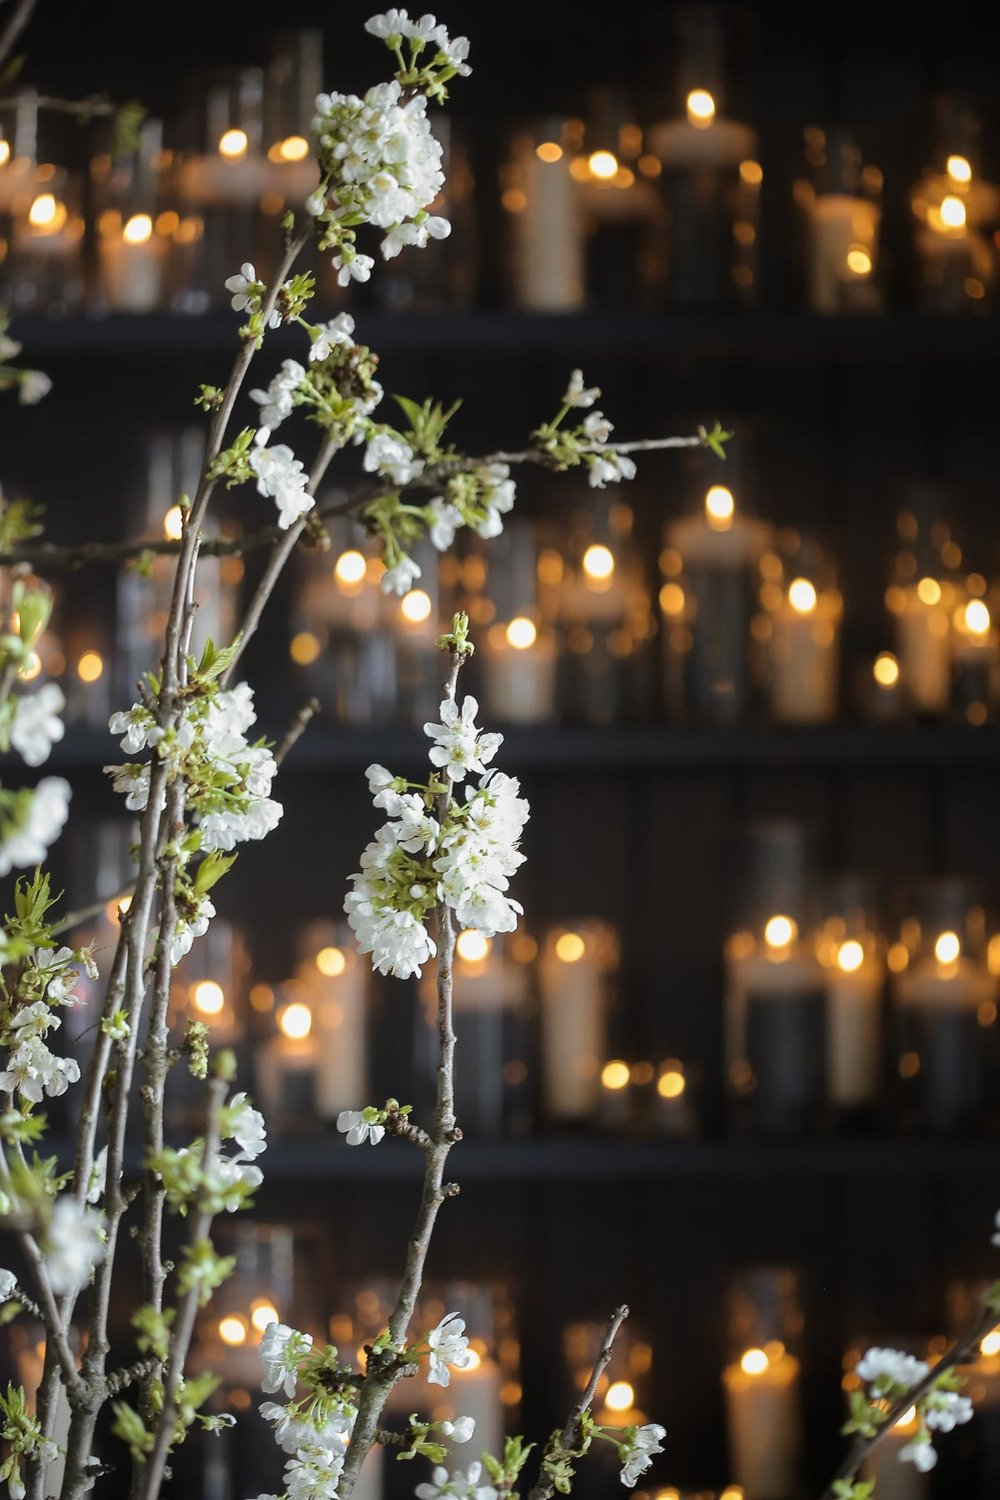 romantic-wedding-ceremony-cherry-blossoms-at-weddings-utah-weddings_pepper_nix_photography-39.jpg